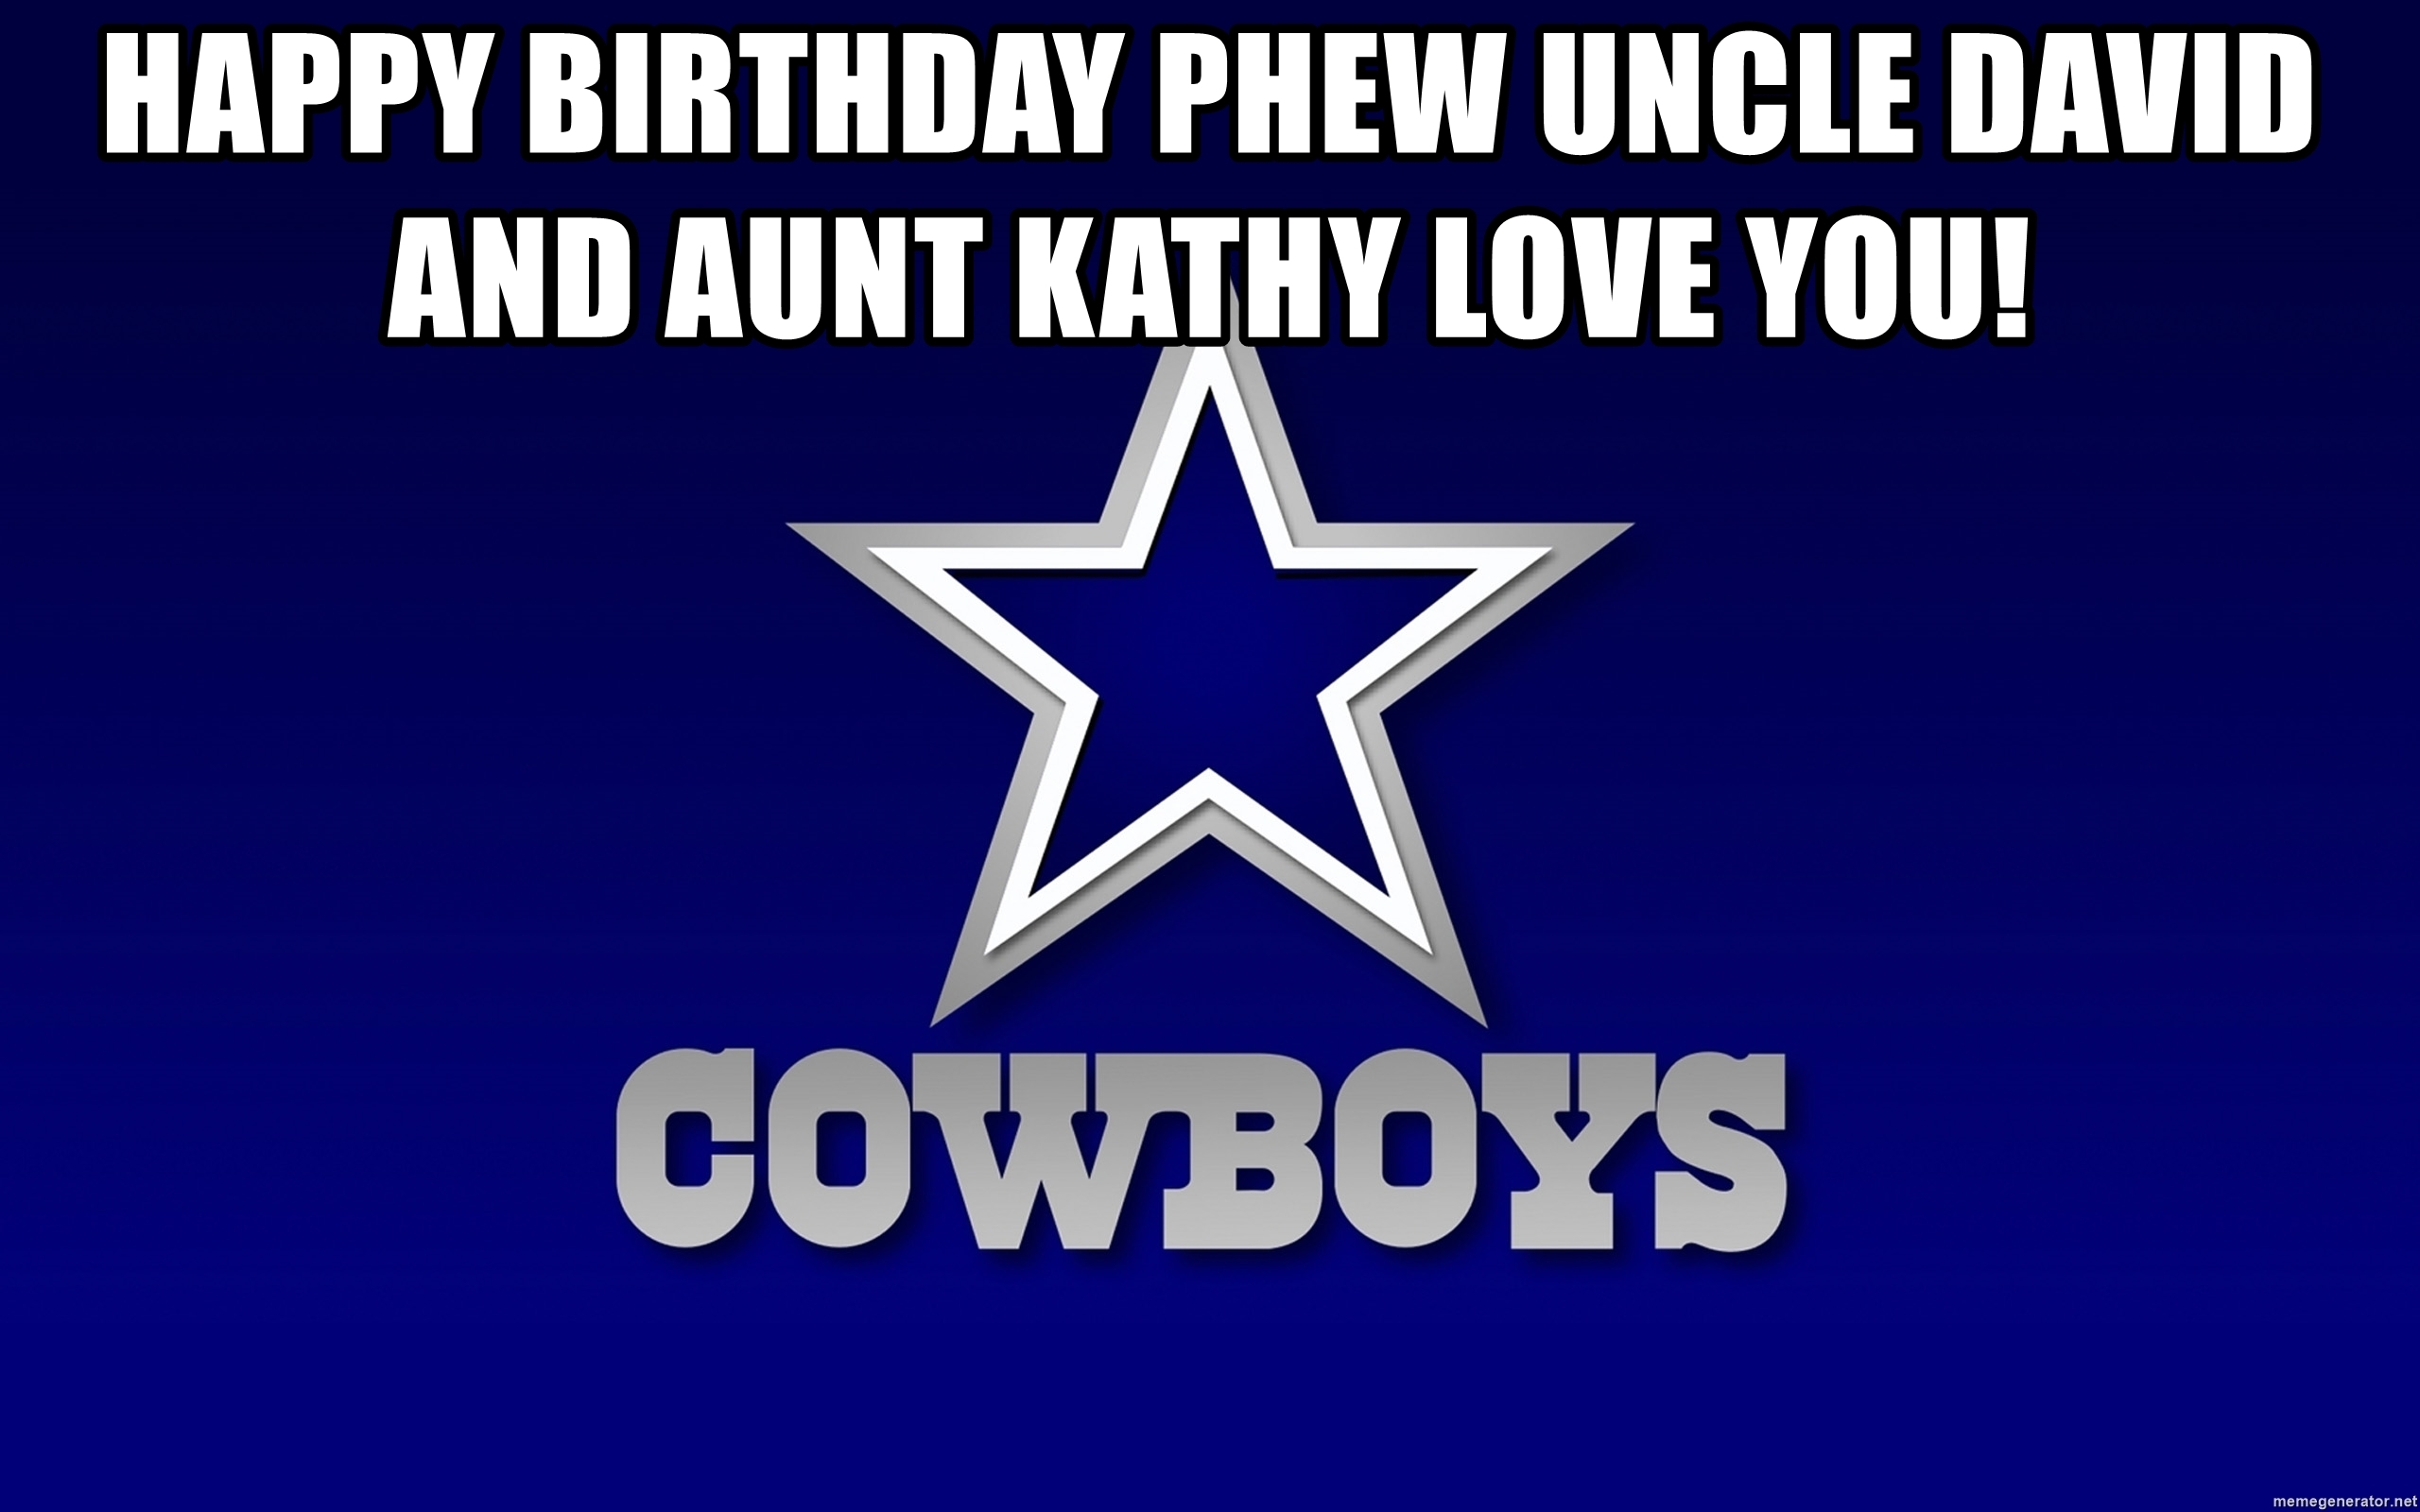 happy birthday aunt kathy ; happy-birthday-phew-uncle-david-and-aunt-kathy-love-you